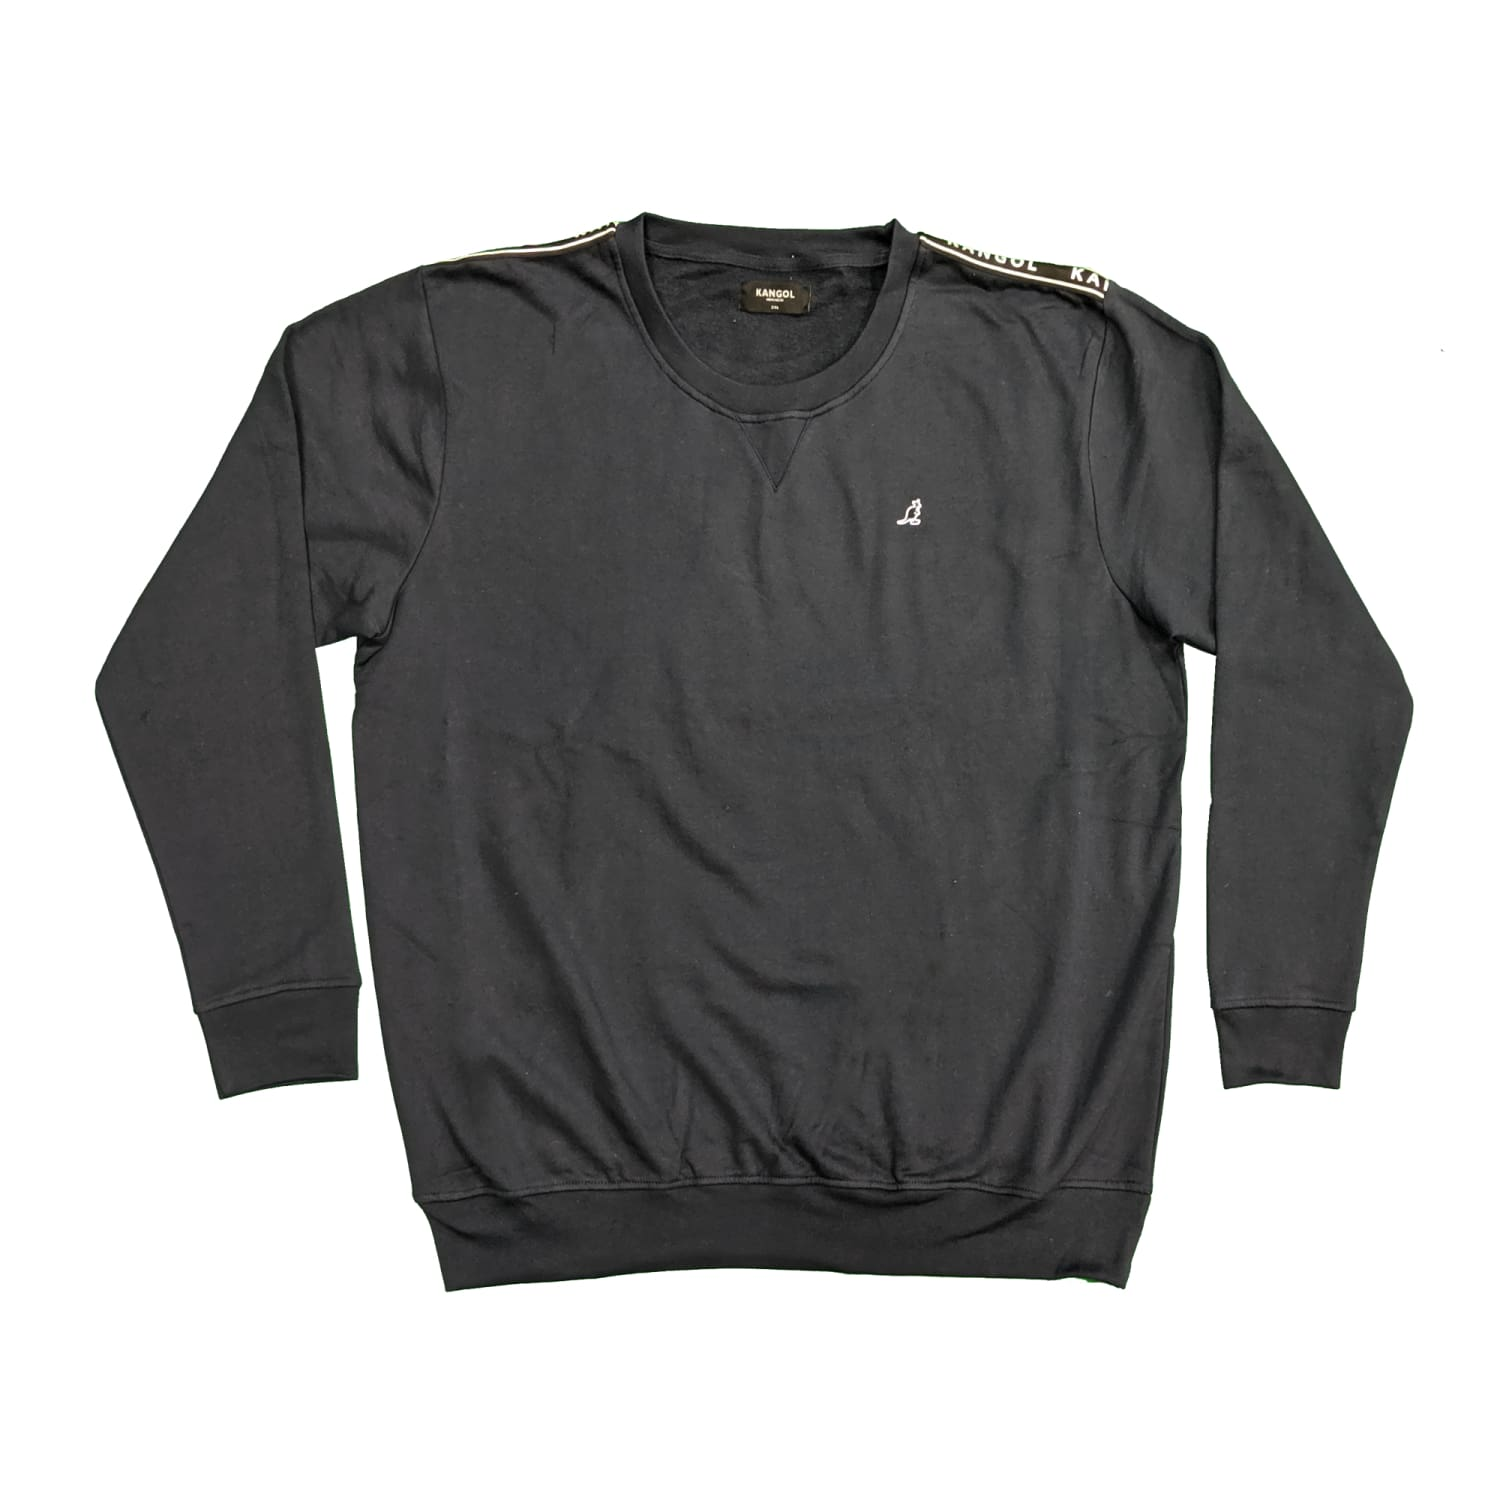 Kangol Sweatshirt - Foray - Navy 1